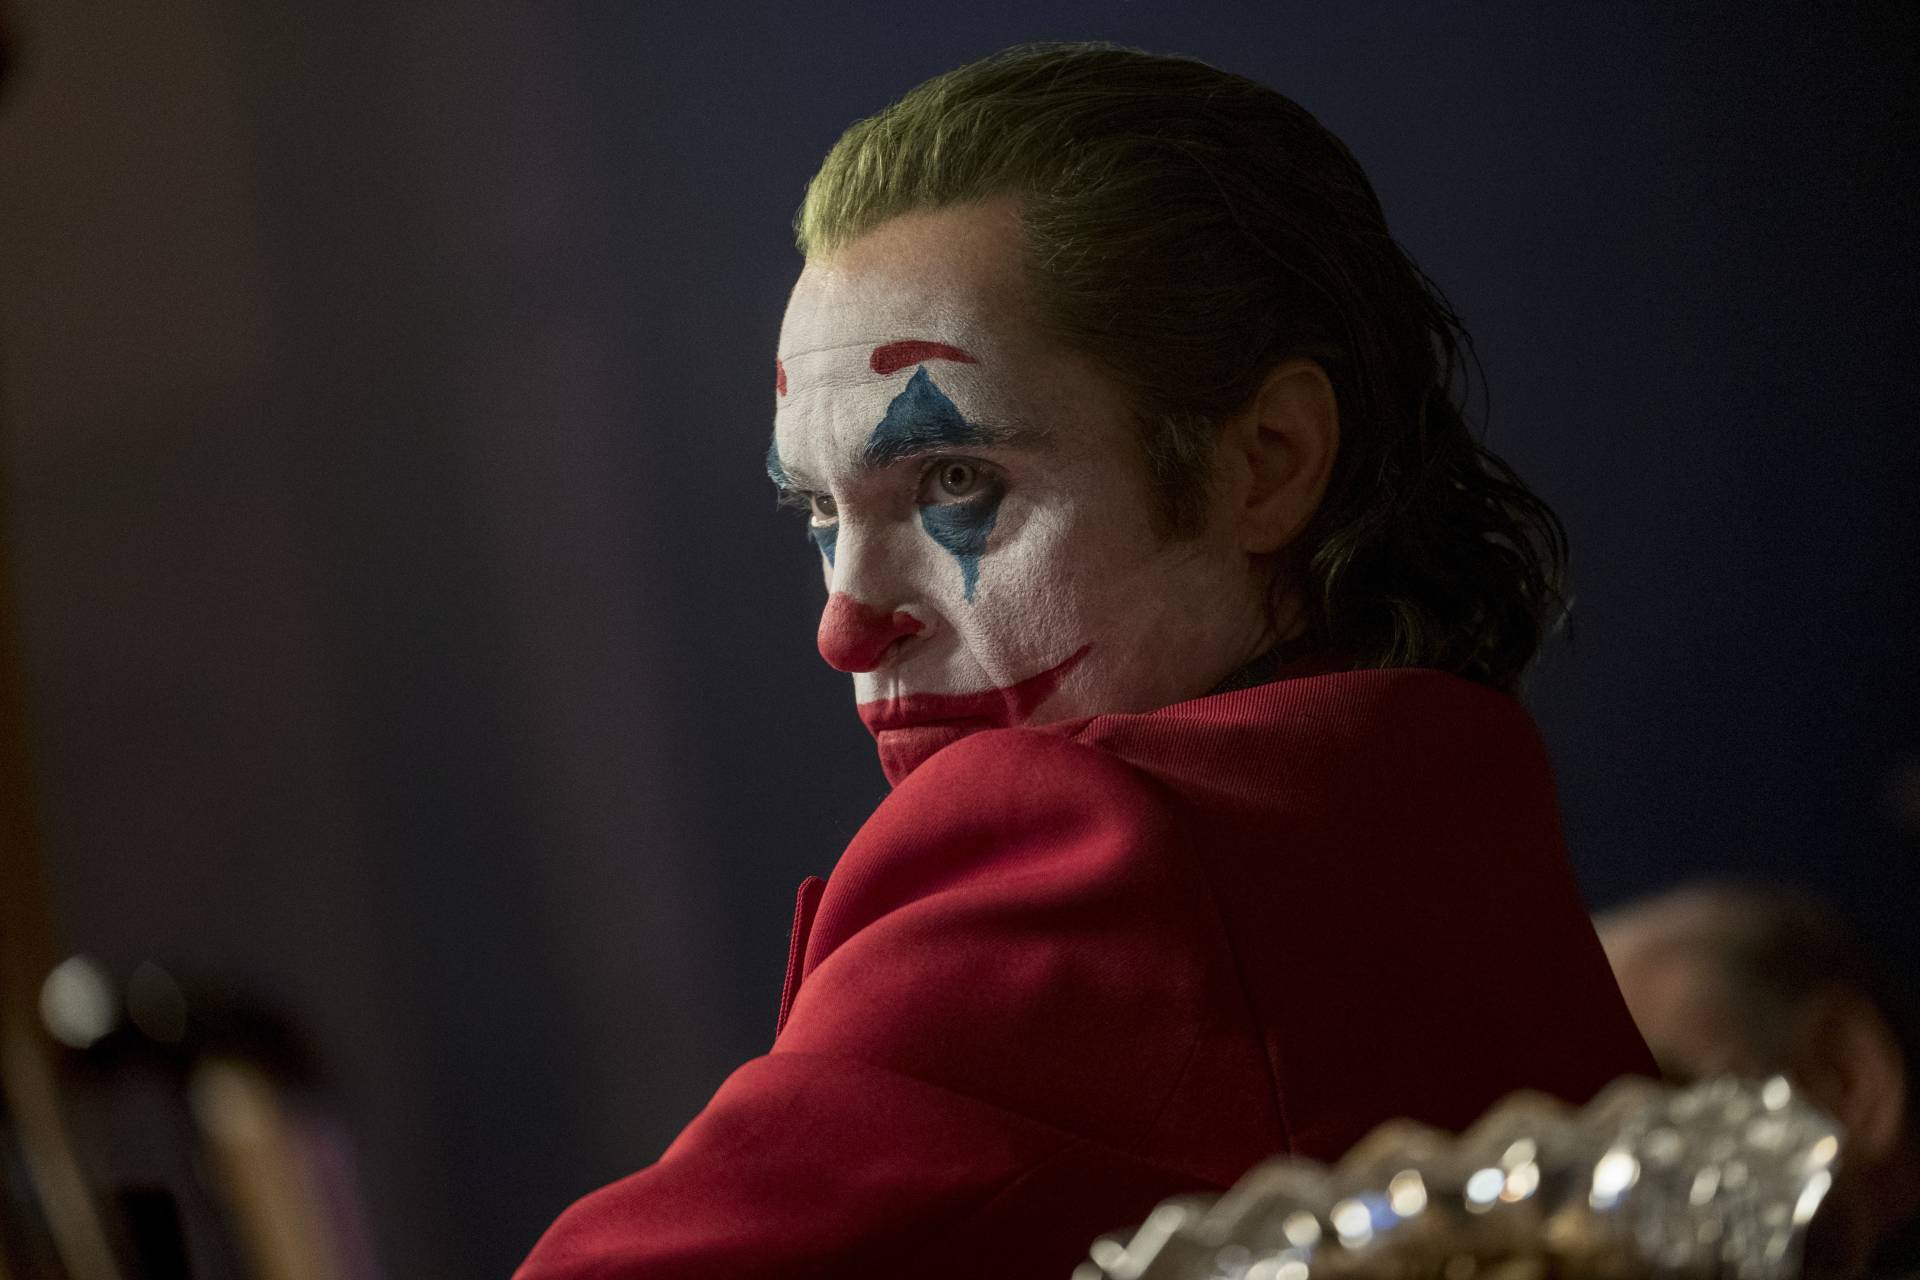 Joaquin Phoenix was nominated for a Golden Globe for best actor in a motion picture drama for his role in 'Joker'. Photo: Warner Bros.